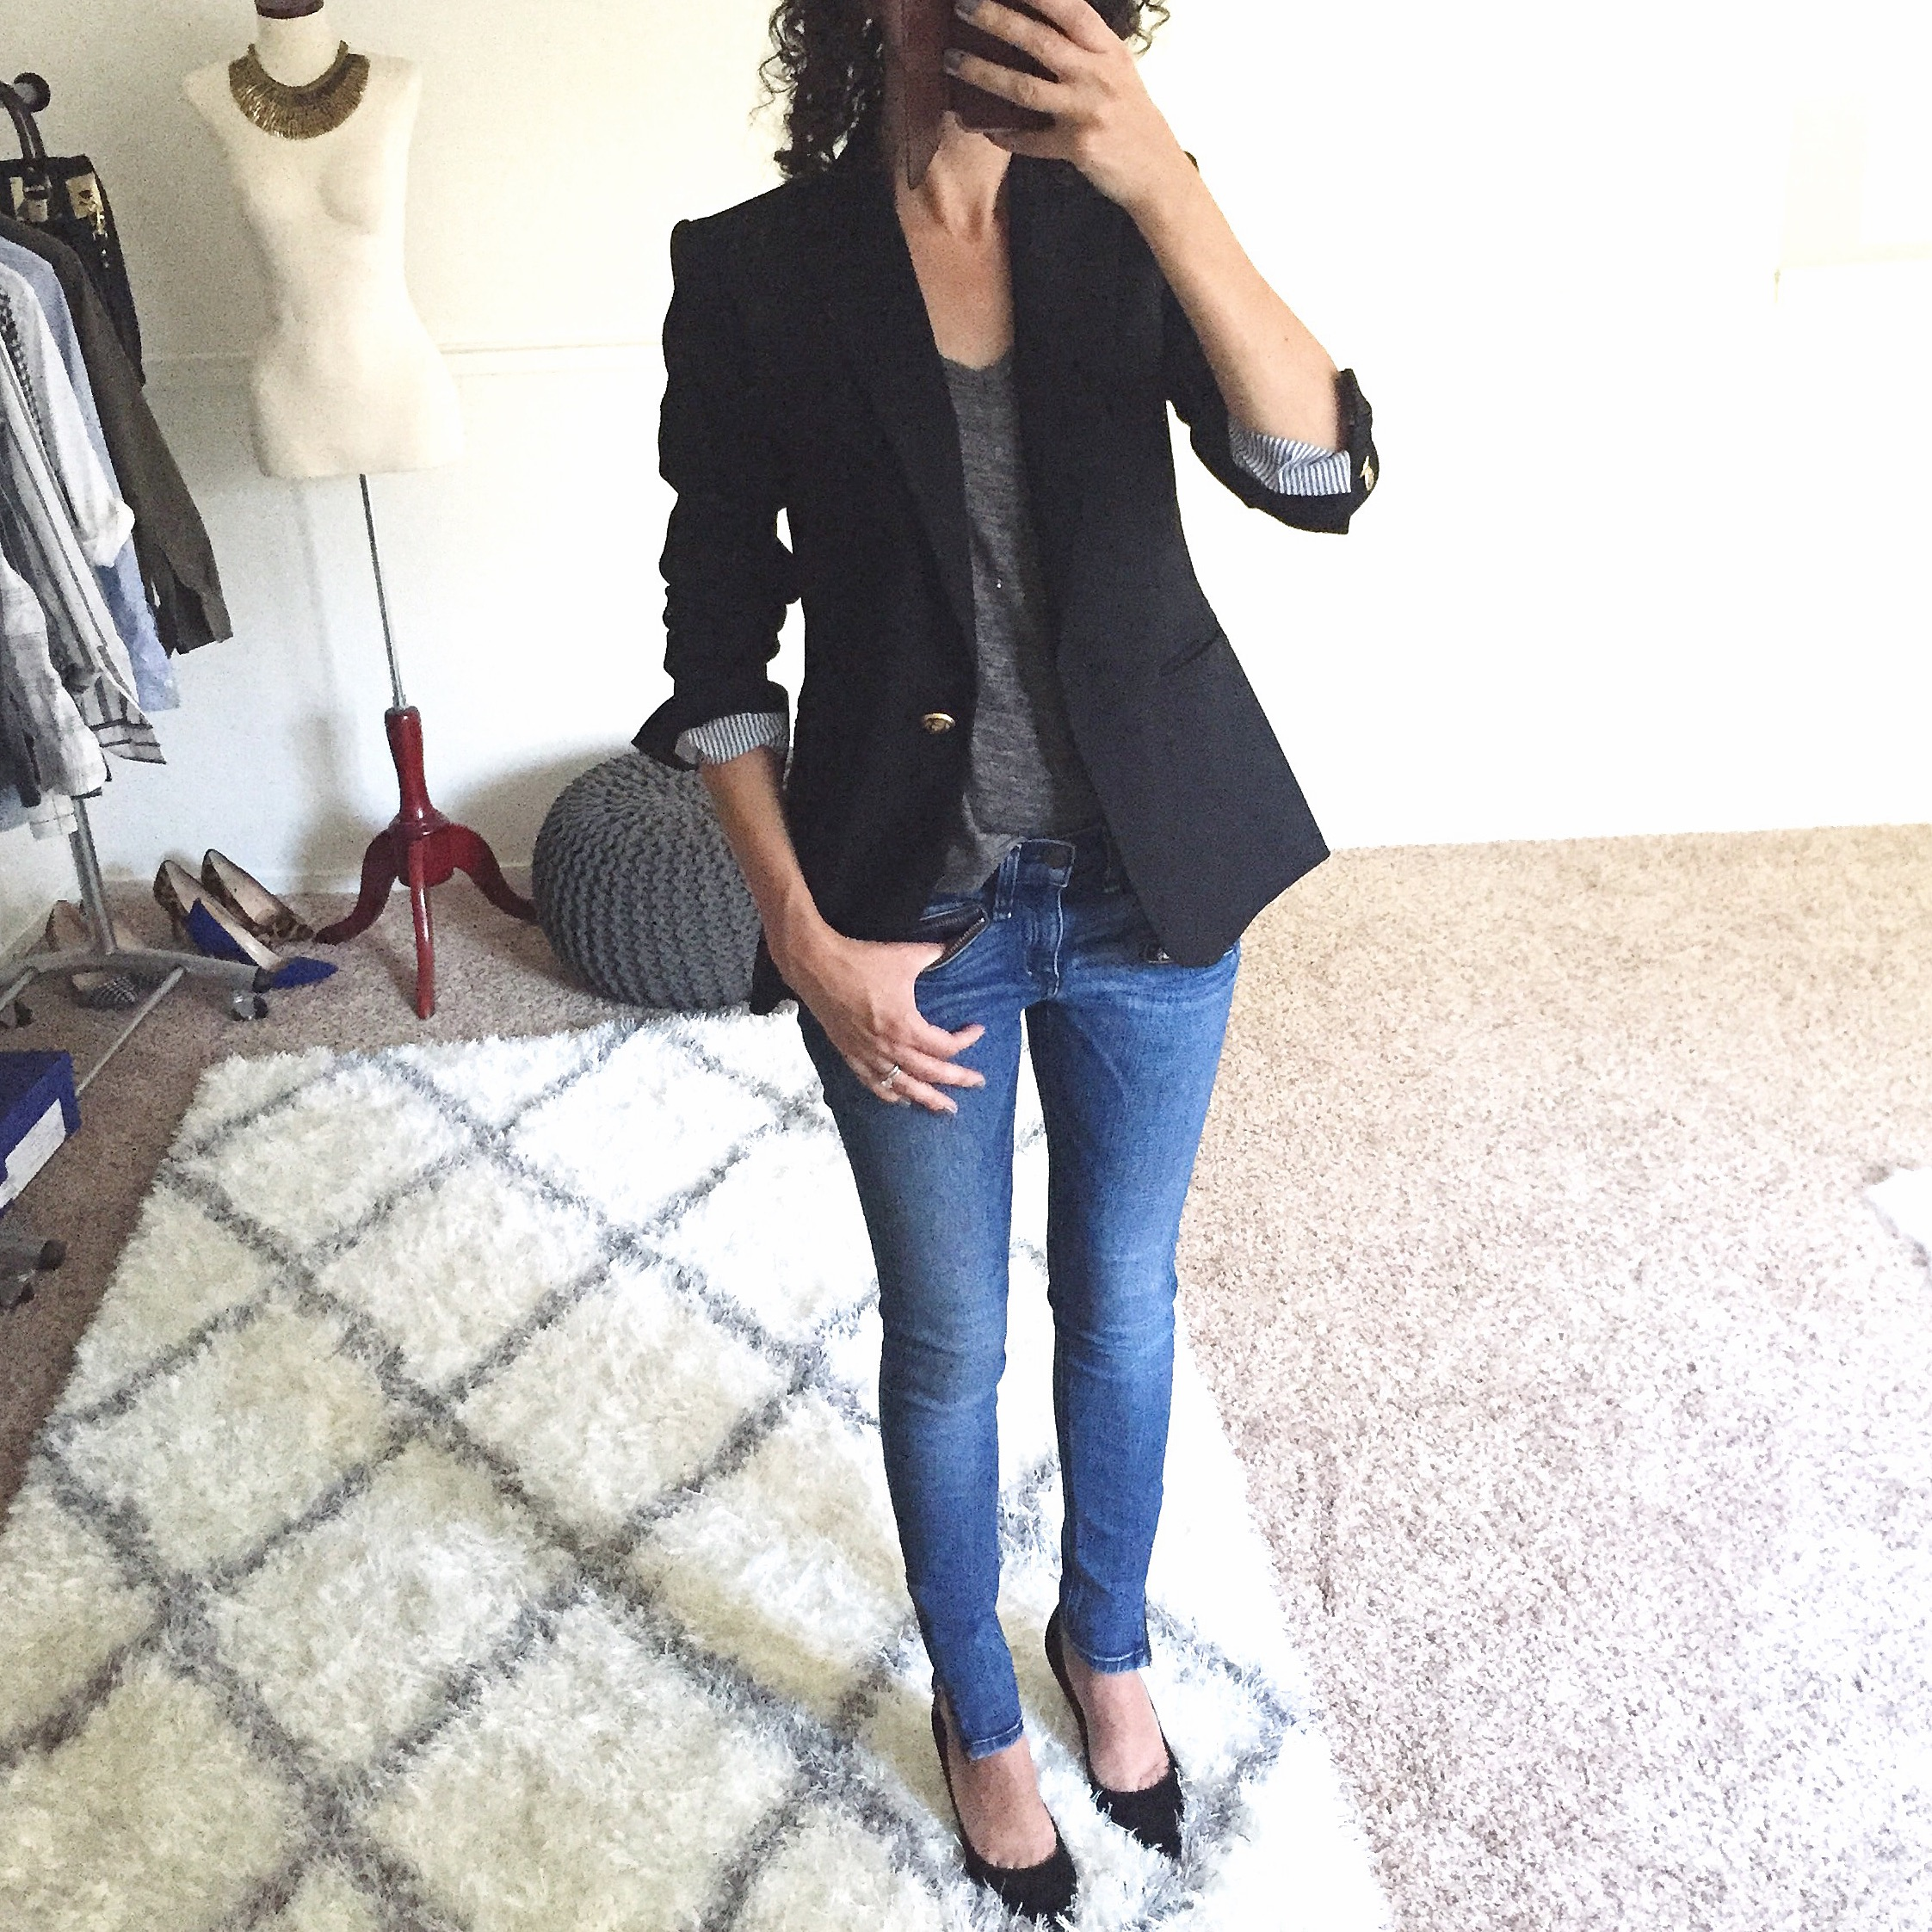 Fit Review Friday – J.Crew Fall Arrivals in Size Petite 000 & XXXS